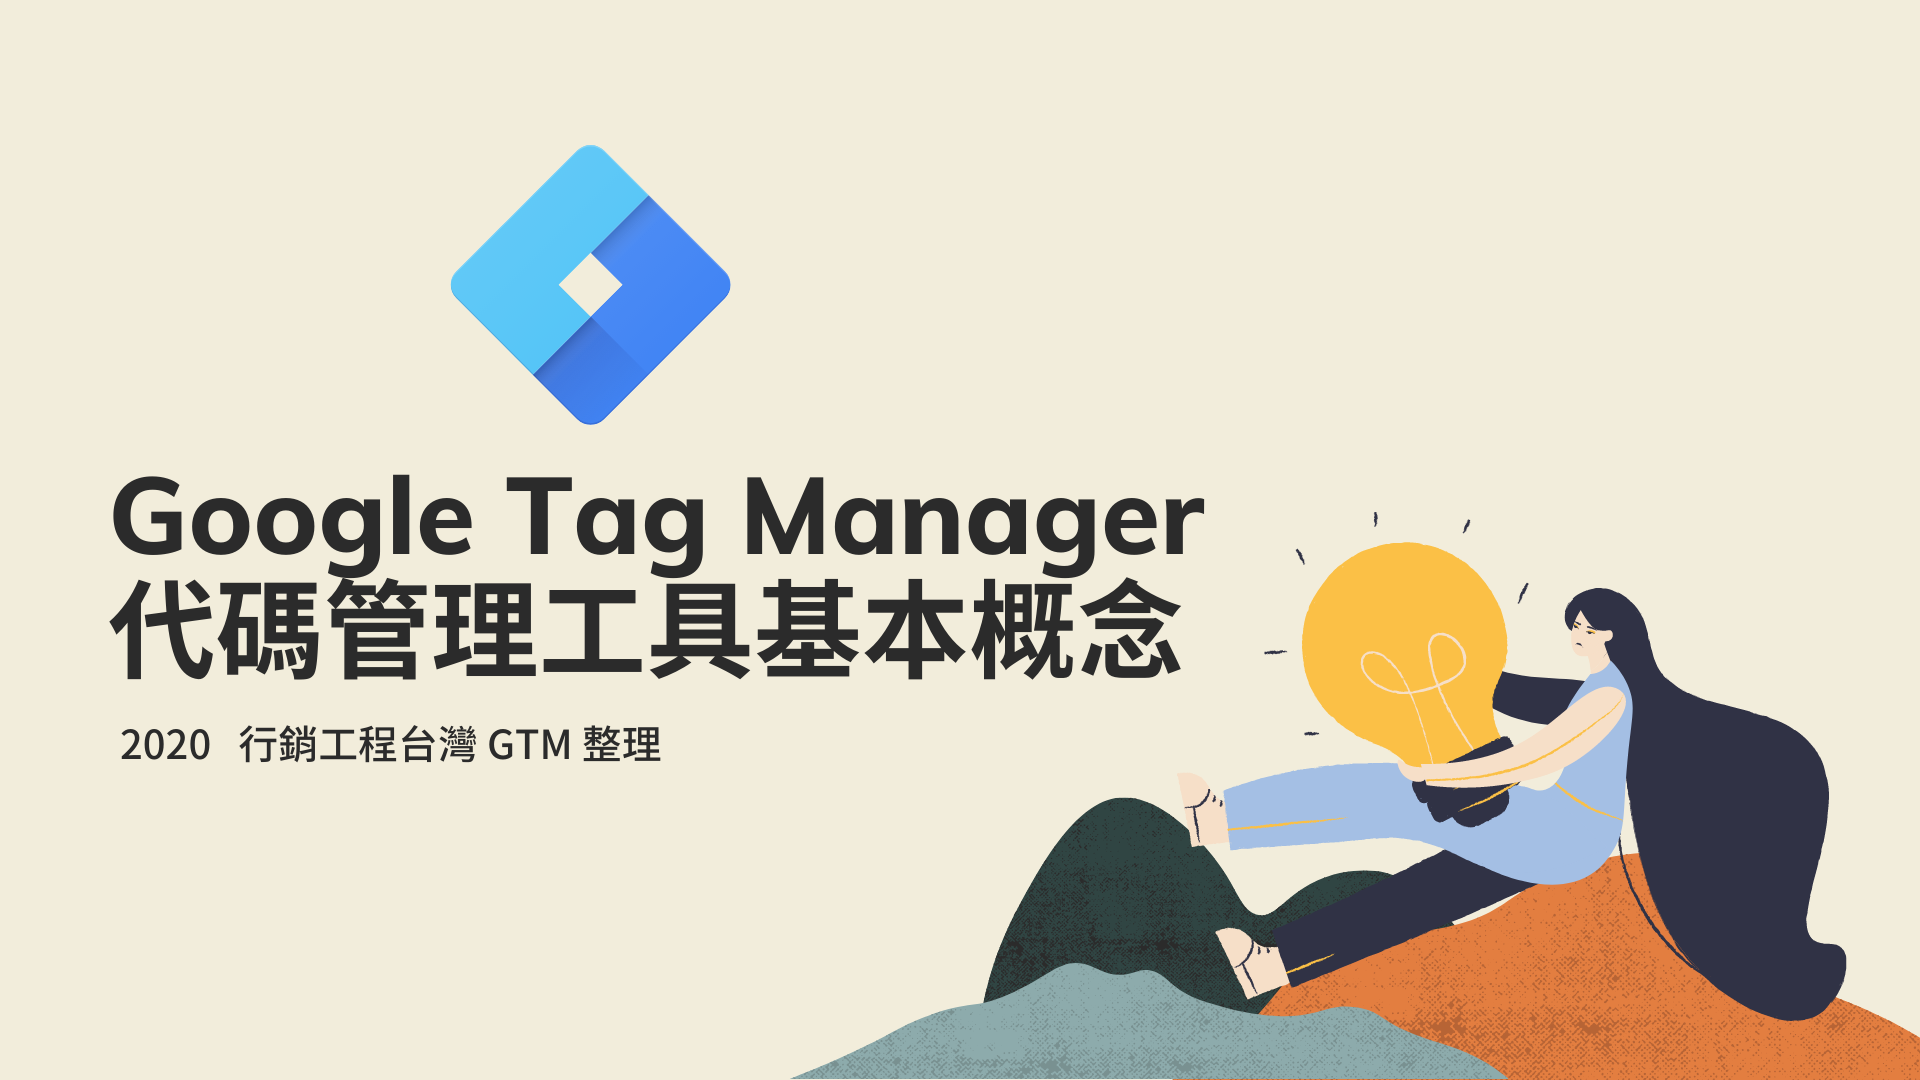 Protected: Google Tag Manager 代碼管理工具基本概念